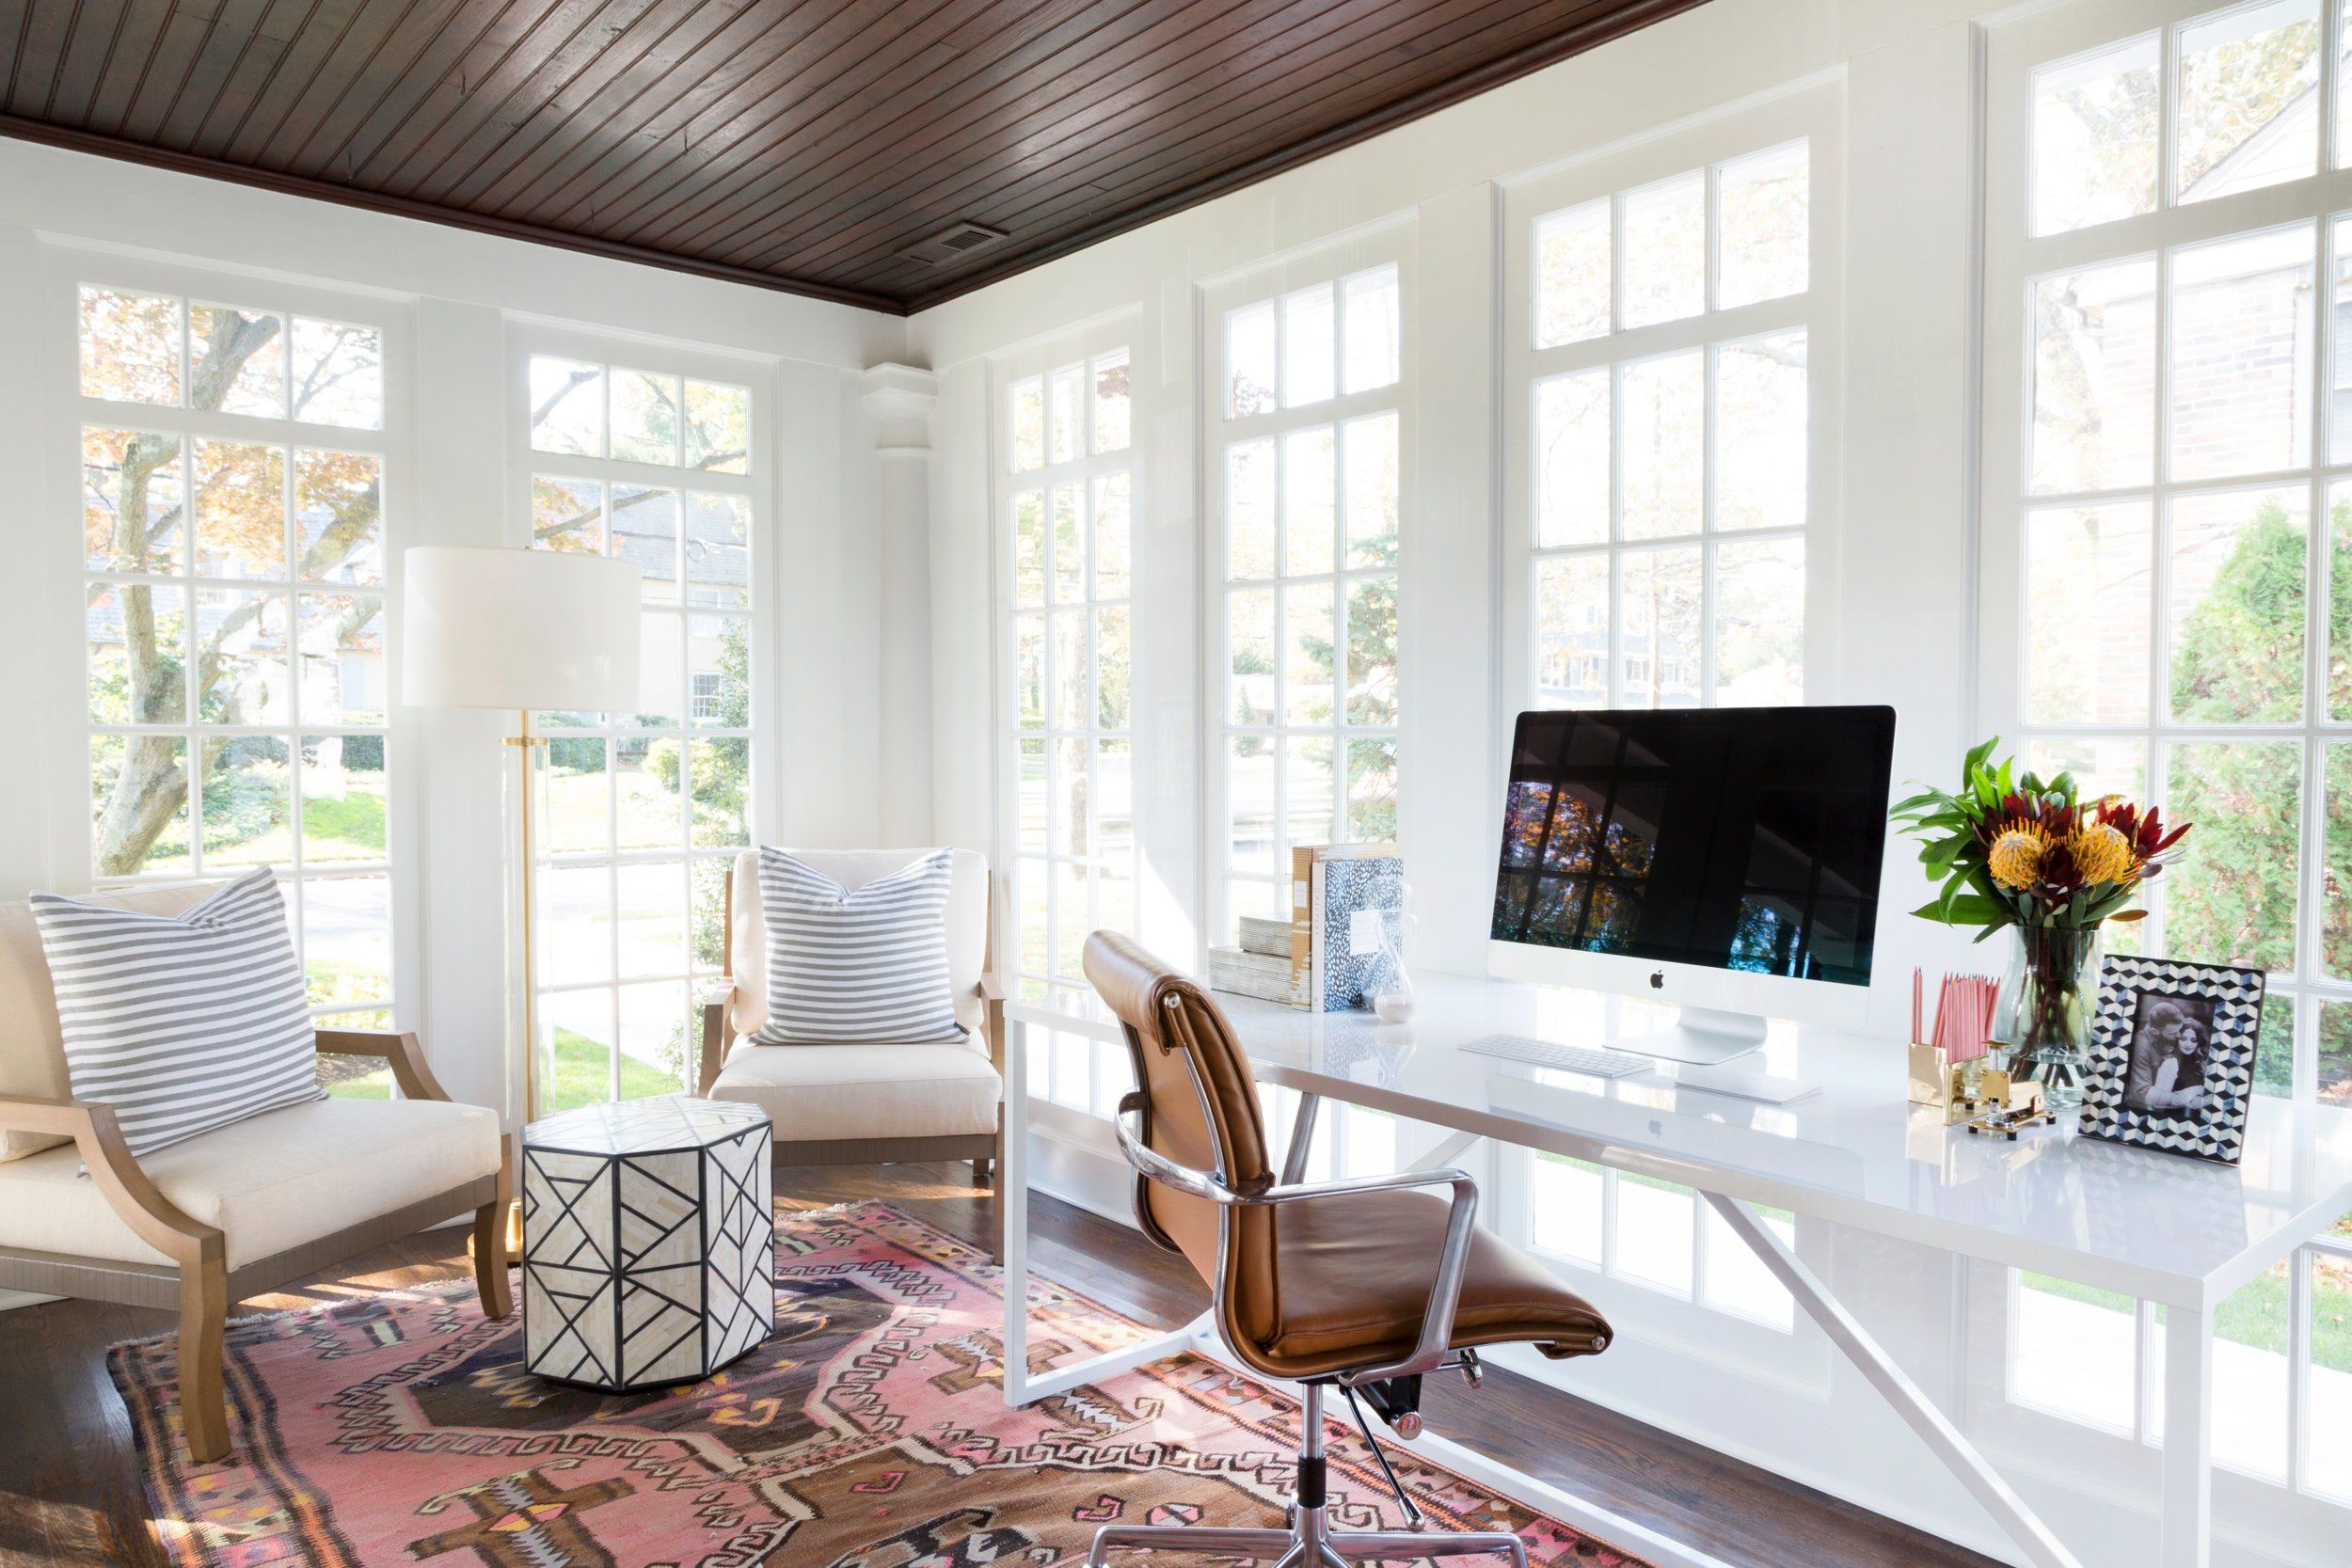 Haddonfield Project: Exterior + Sitting Room + Office | Sunroom ...